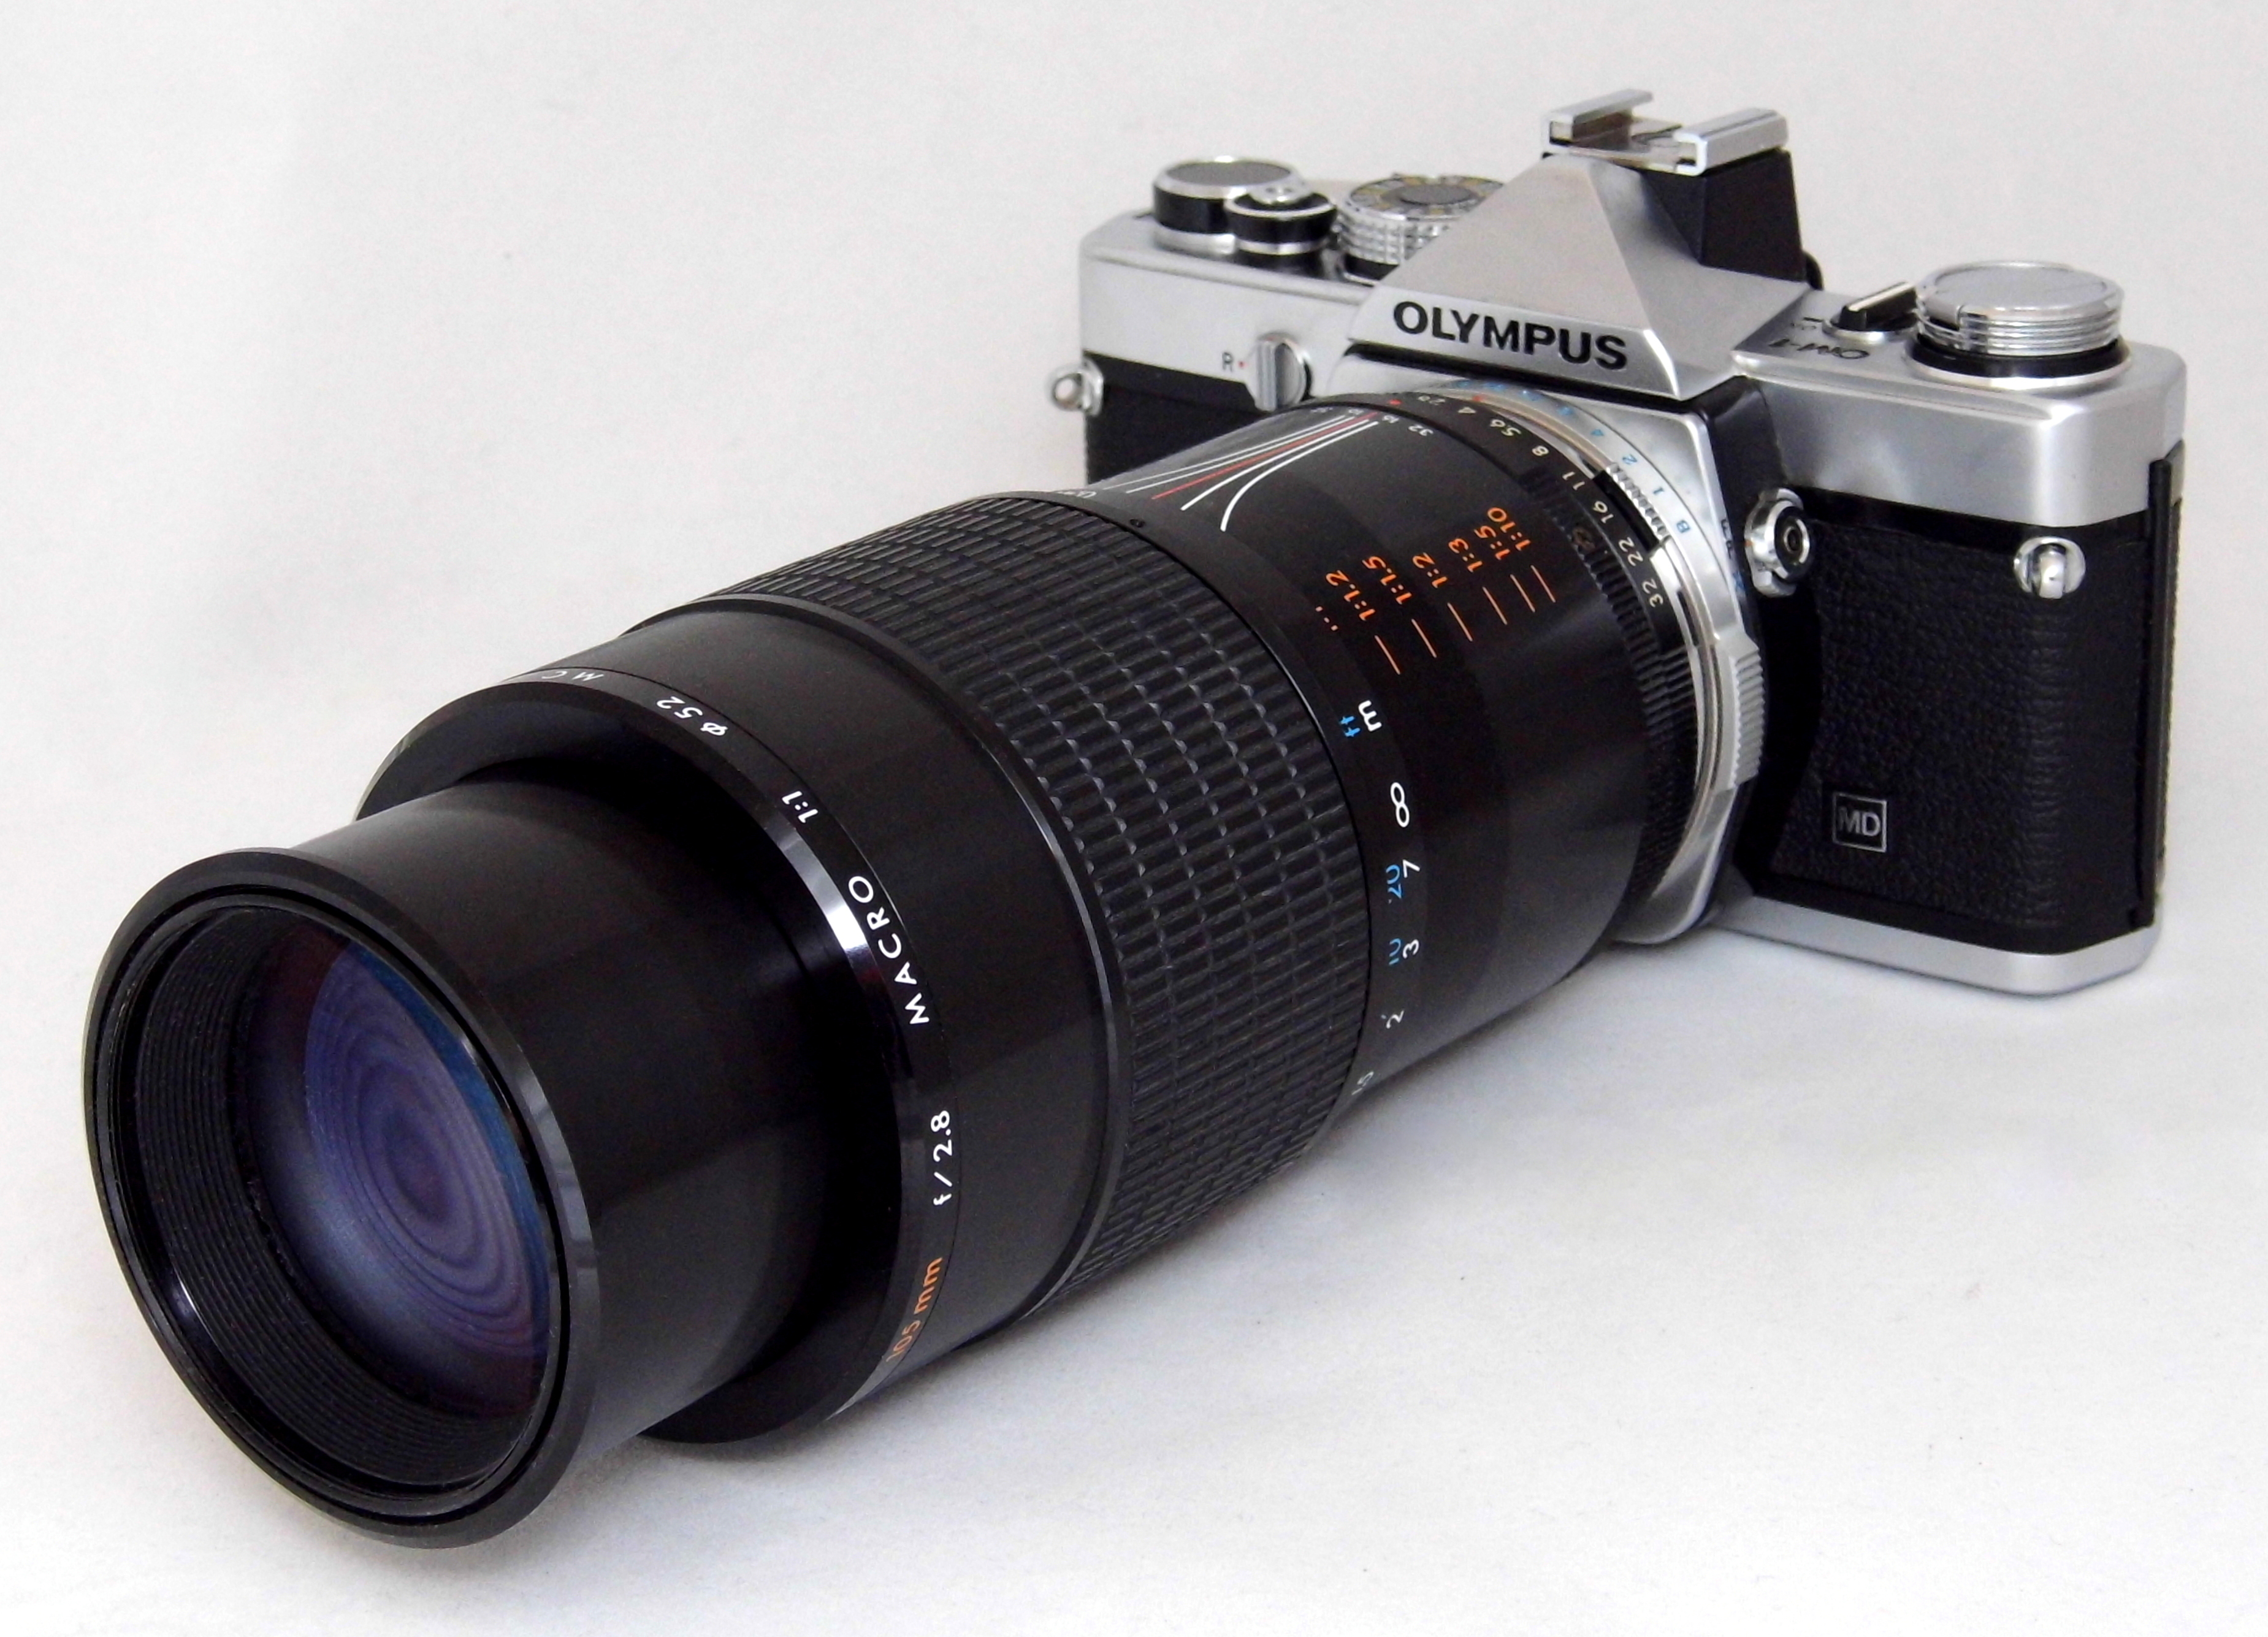 File:Vintage Olympus OM-1 35mm Film SLR Camera With Kiron 105mm f2 8